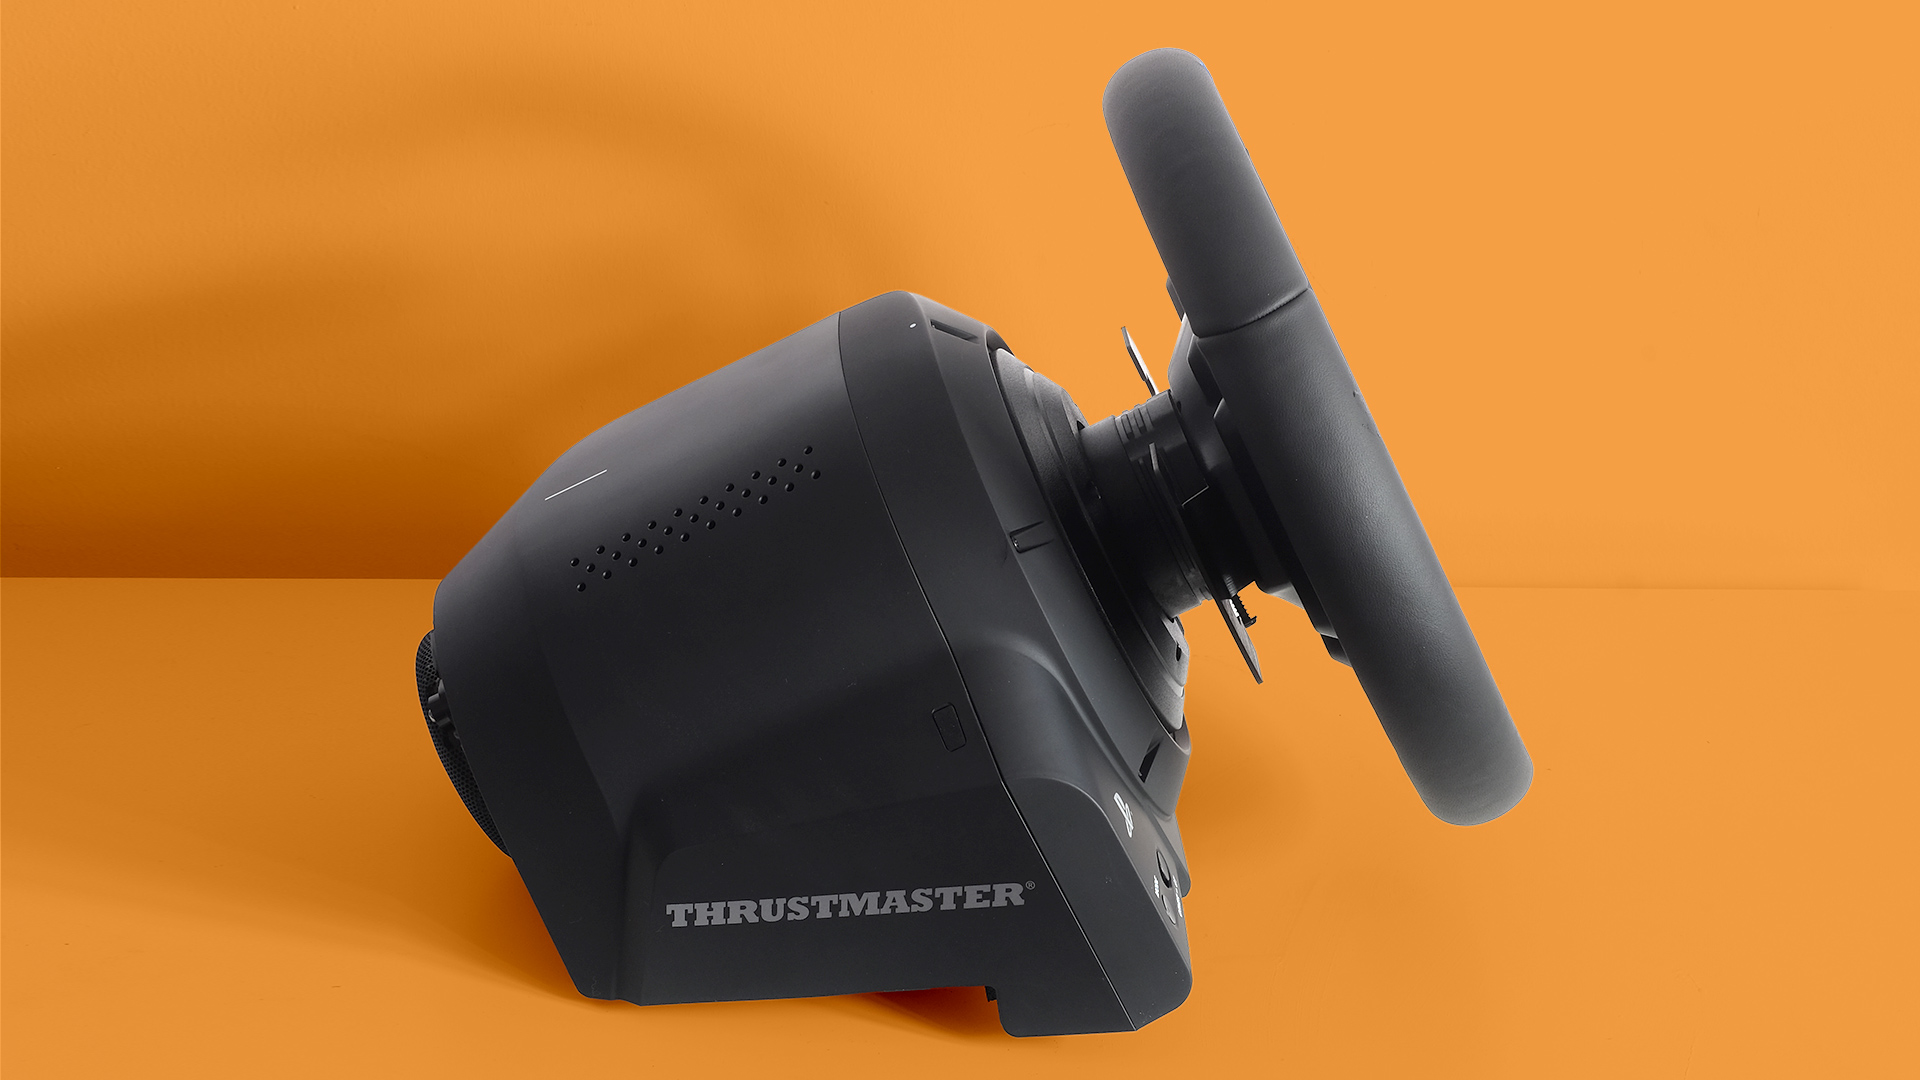 Thrustmaster T-GT steering wheel